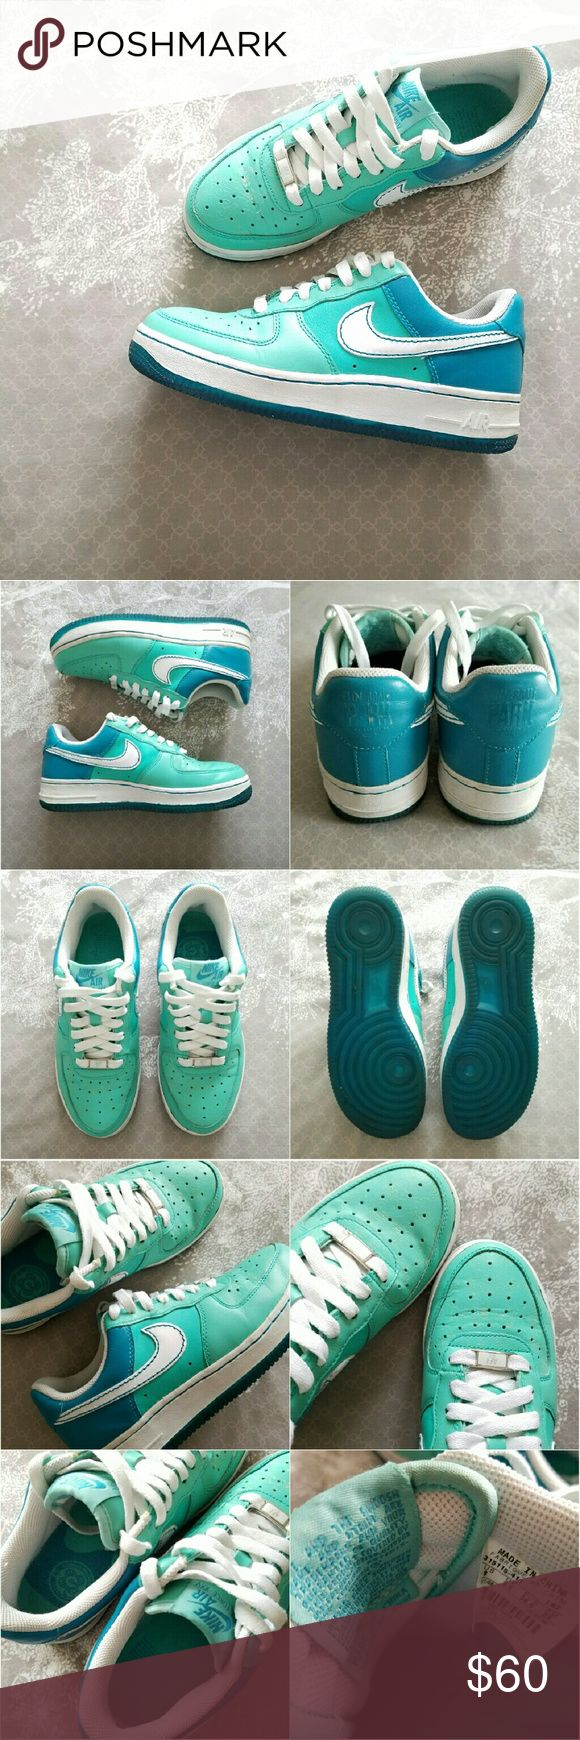 """Nike AF1 Cloverdale Parks edition Nike Airforce 1 'Cloverdale Park' Courts edition. In azure/white-tropical teal colorway. Tonal blue upper with embossed clovers on the toe and embossed """"Cloverdale Park Courts"""" on the heel tab. No box. Gently worn, EUC. Size way too small for me. Bundle for discount.   Size: USA 6, UK 3.5, EUR 36.5, CM 23. Nike Shoes"""